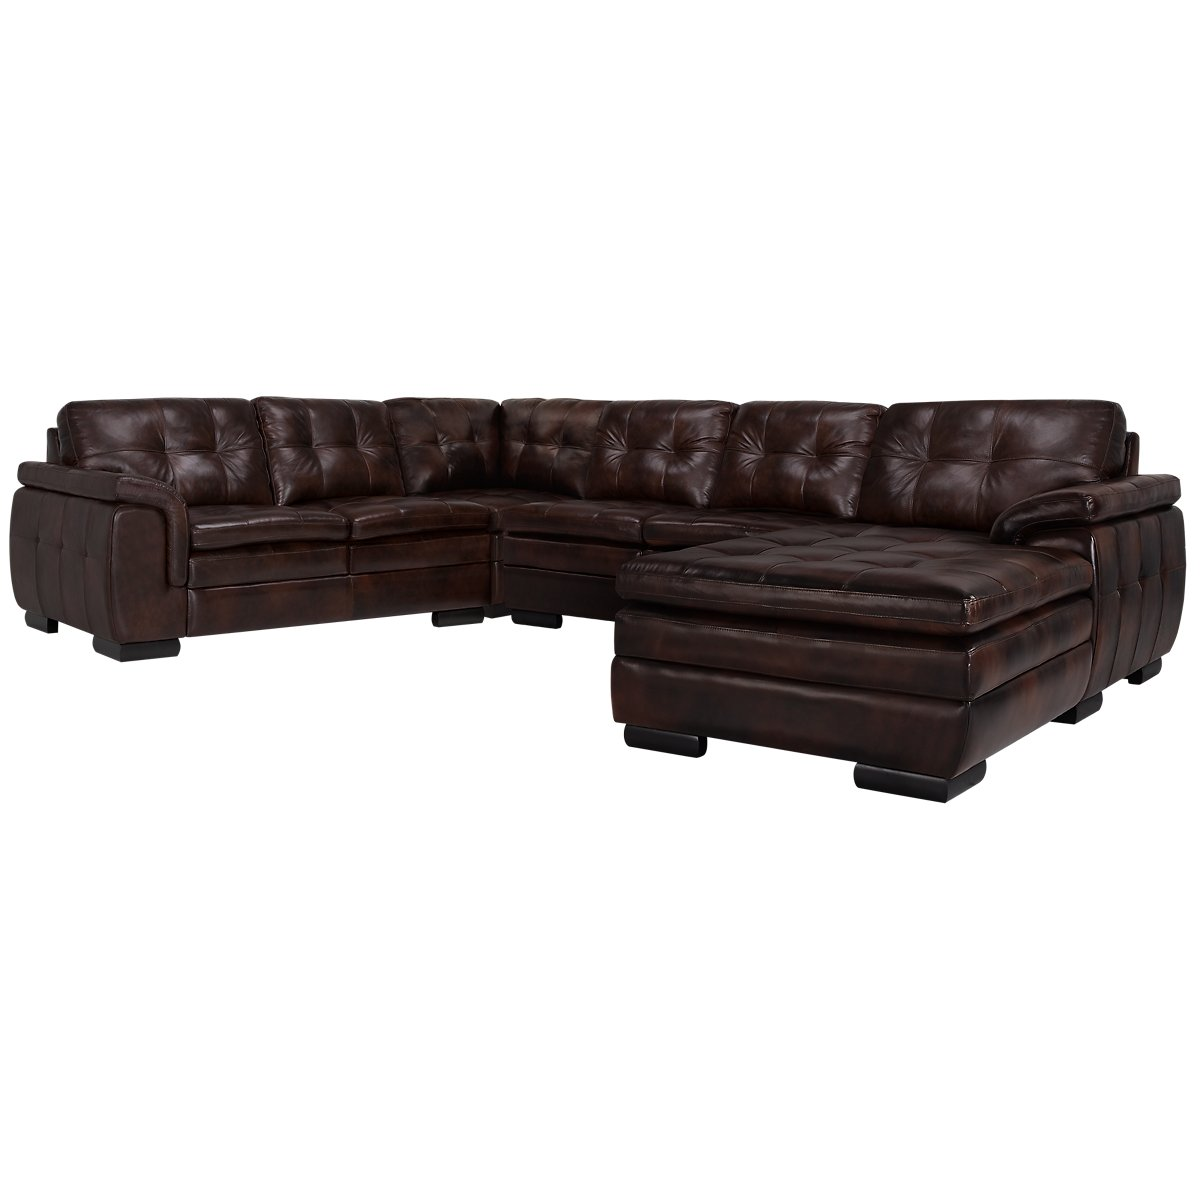 City furniture trevor dark brown leather small right for Brown sectional with chaise